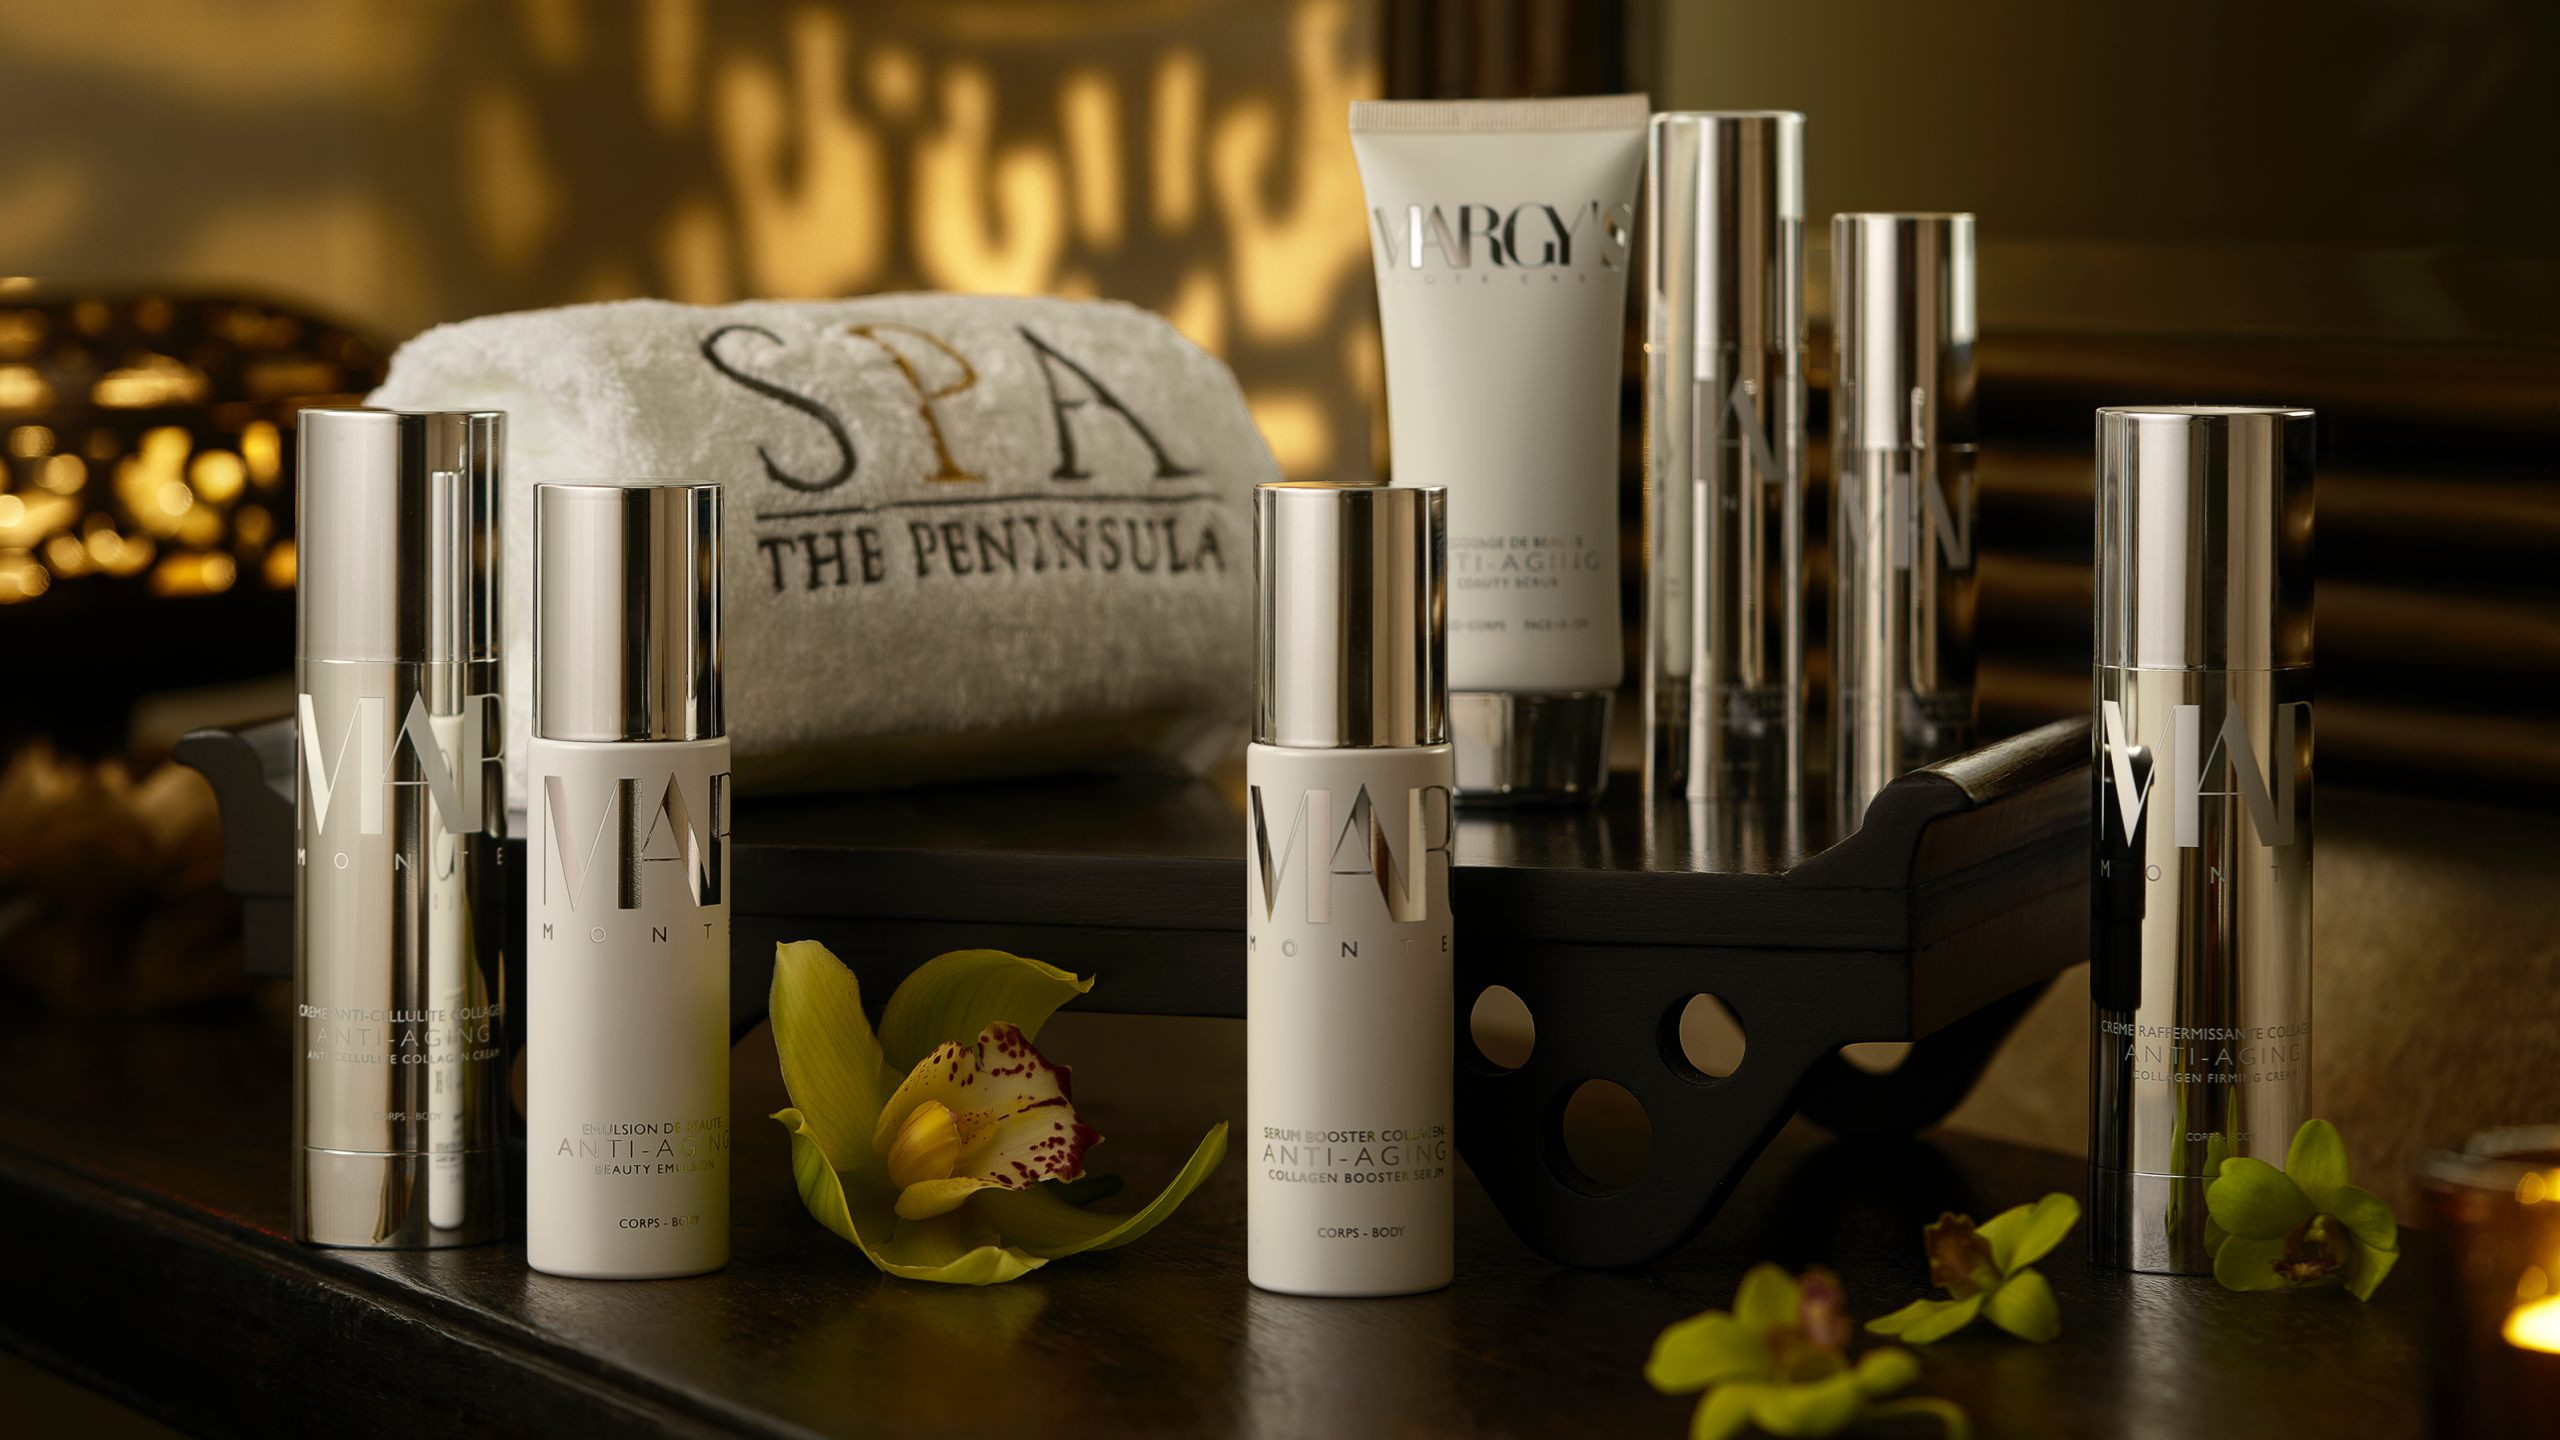 Spa review: Margy's Anti-Cellulite massage at The Peninsula eases tiredness and bloating